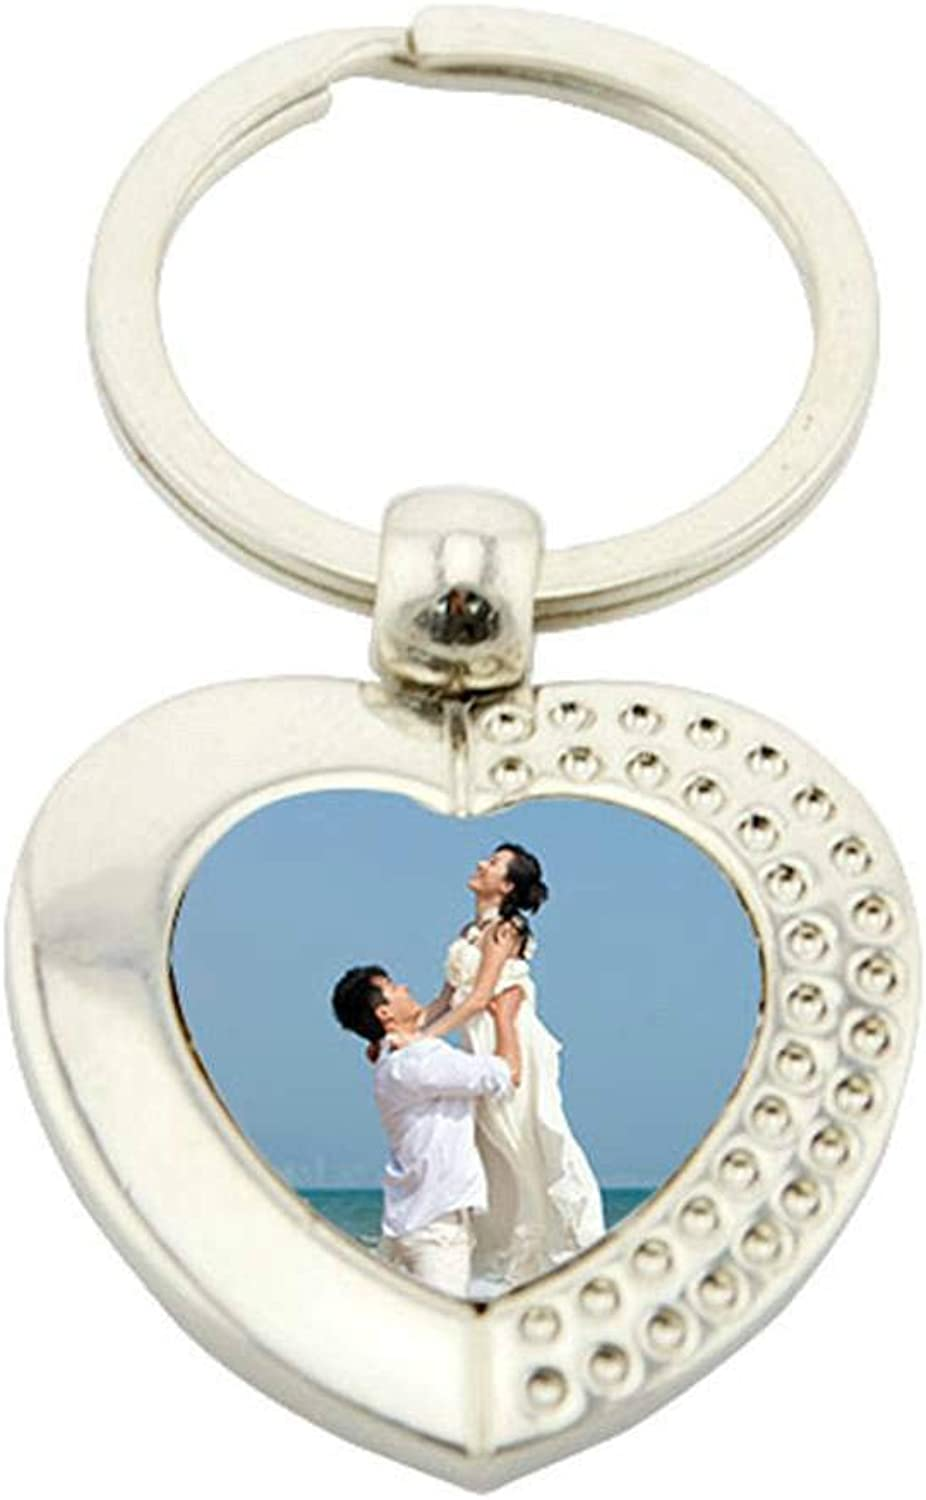 Metal Heart Shape Keyring With Sublimation Print Insert For Heat Press A55 (240 Qty)